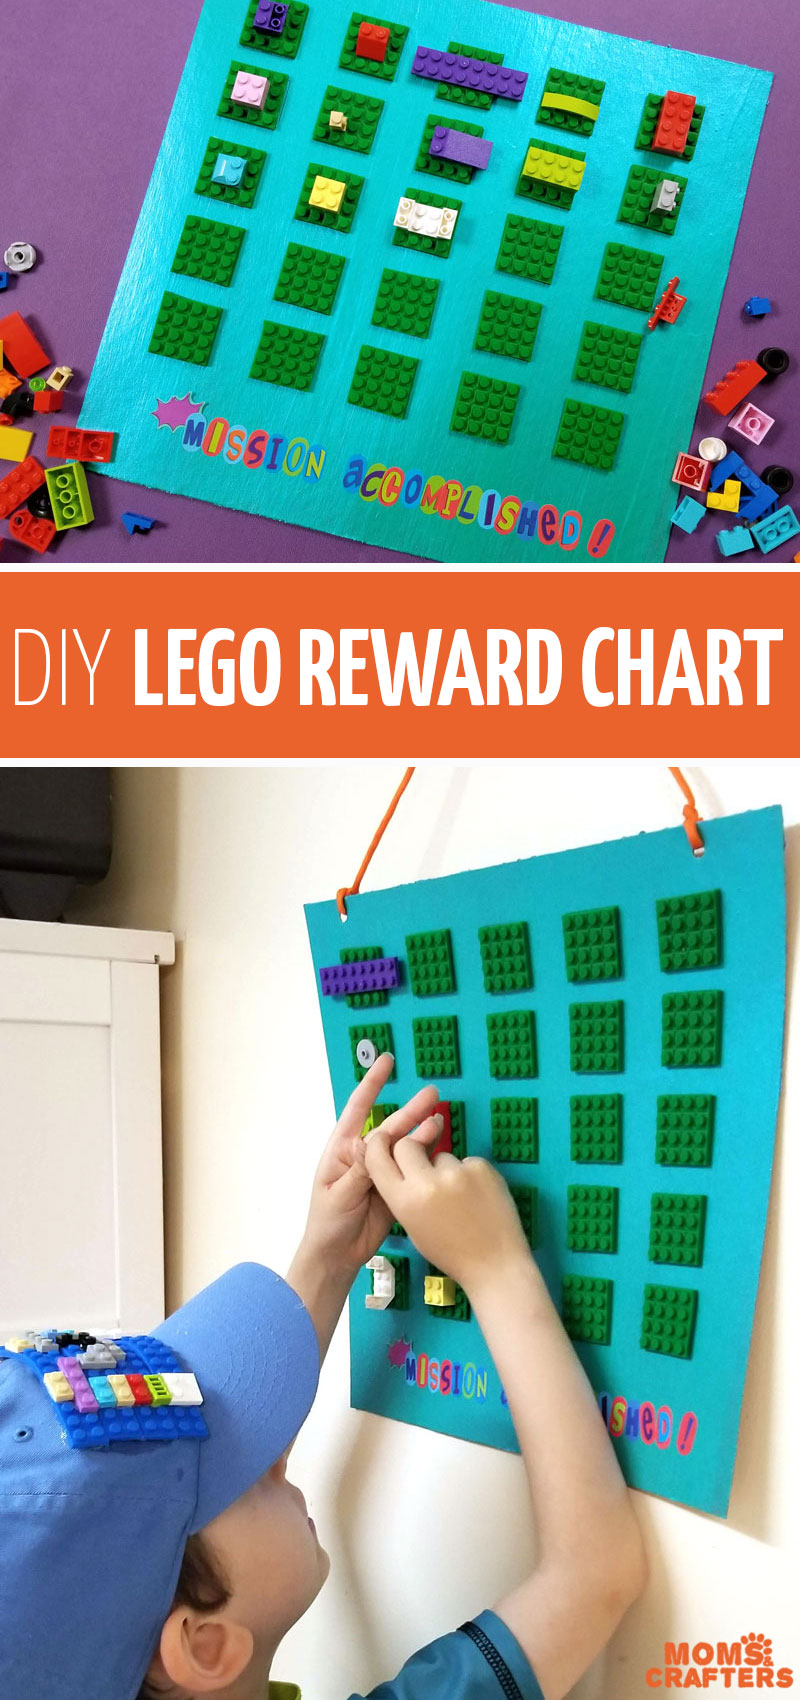 Click To Learn How Make Your Own Diy Reward Chart For Kids Using Brick Tape